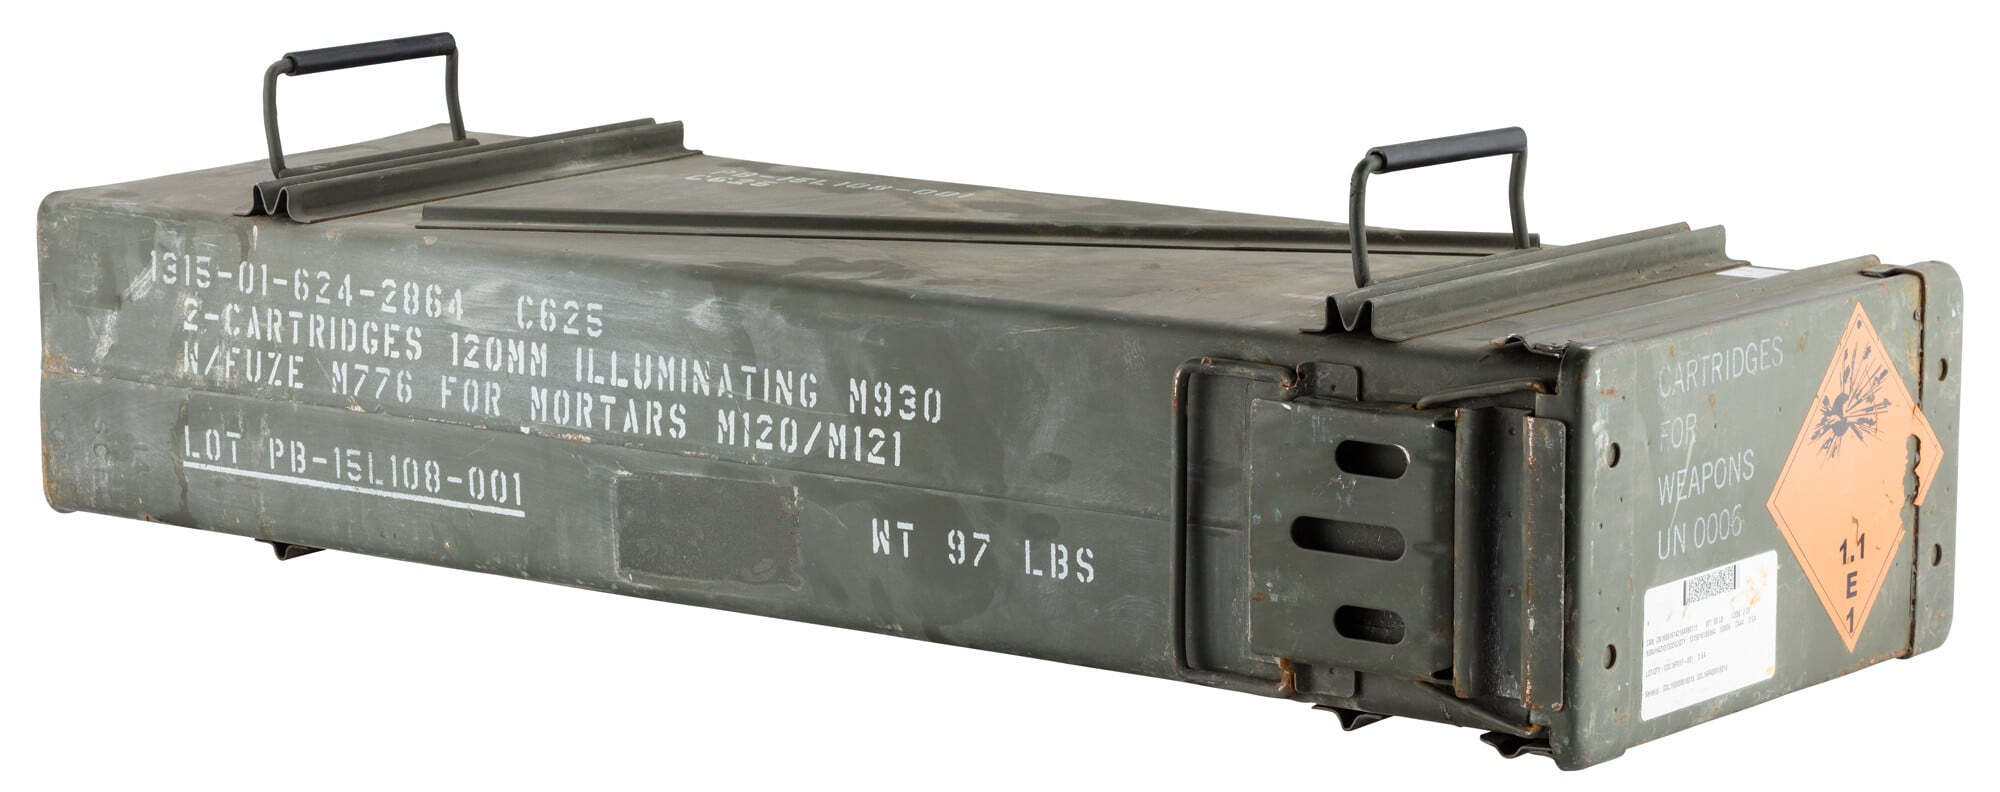 A60446-1 US 120mm used metal ammo box - A60446